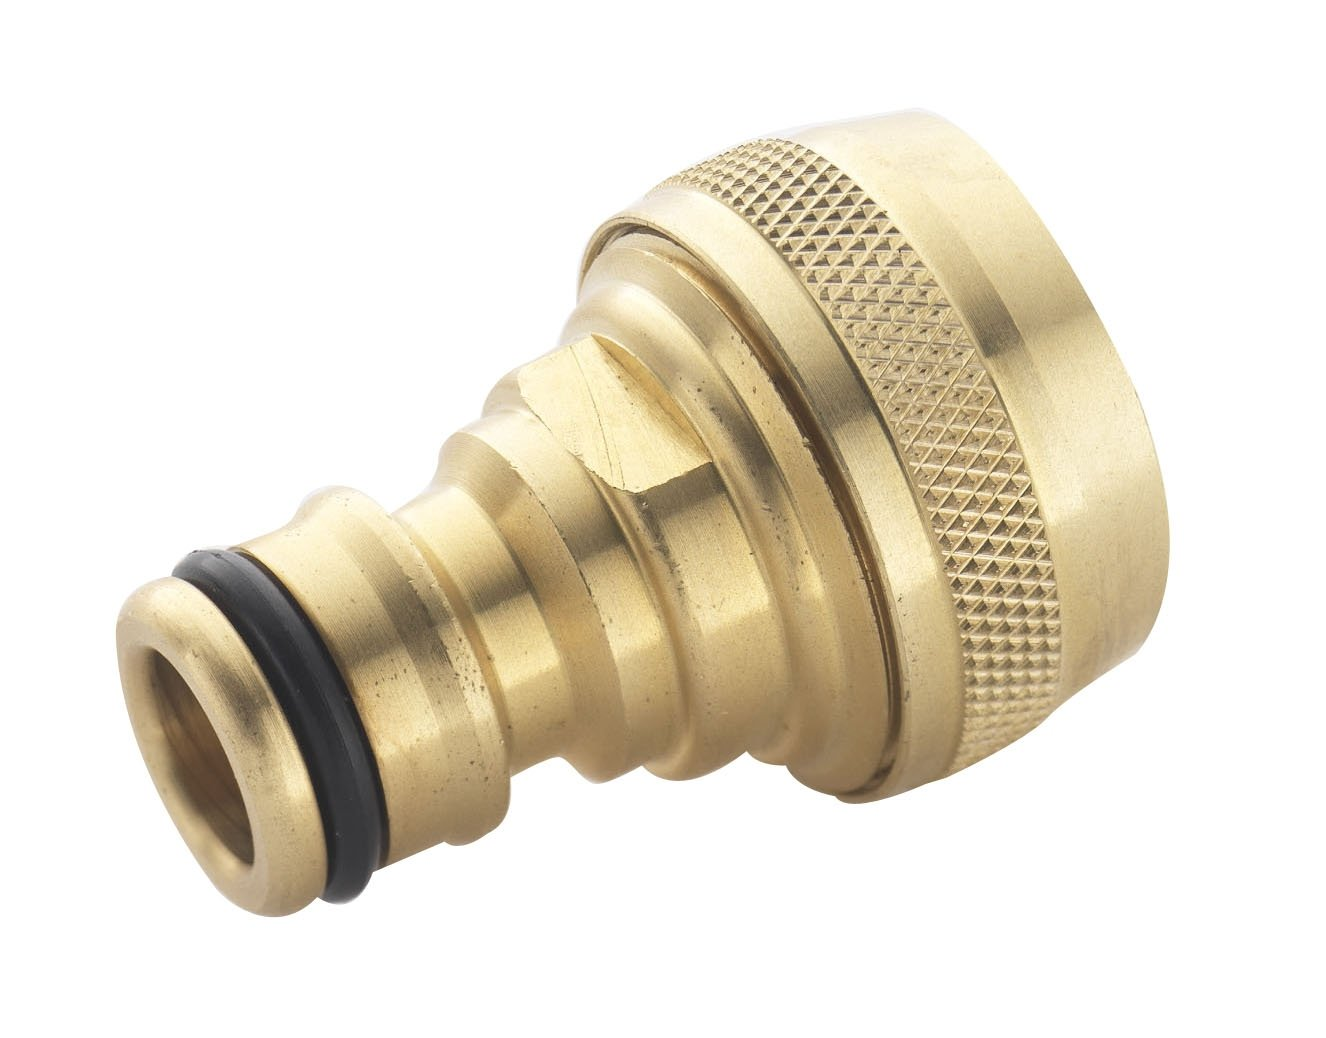 com metal quick shop set hose garden watering irrigation lowes drainage accessories outdoors connector connectors pl hoses yardsmith at